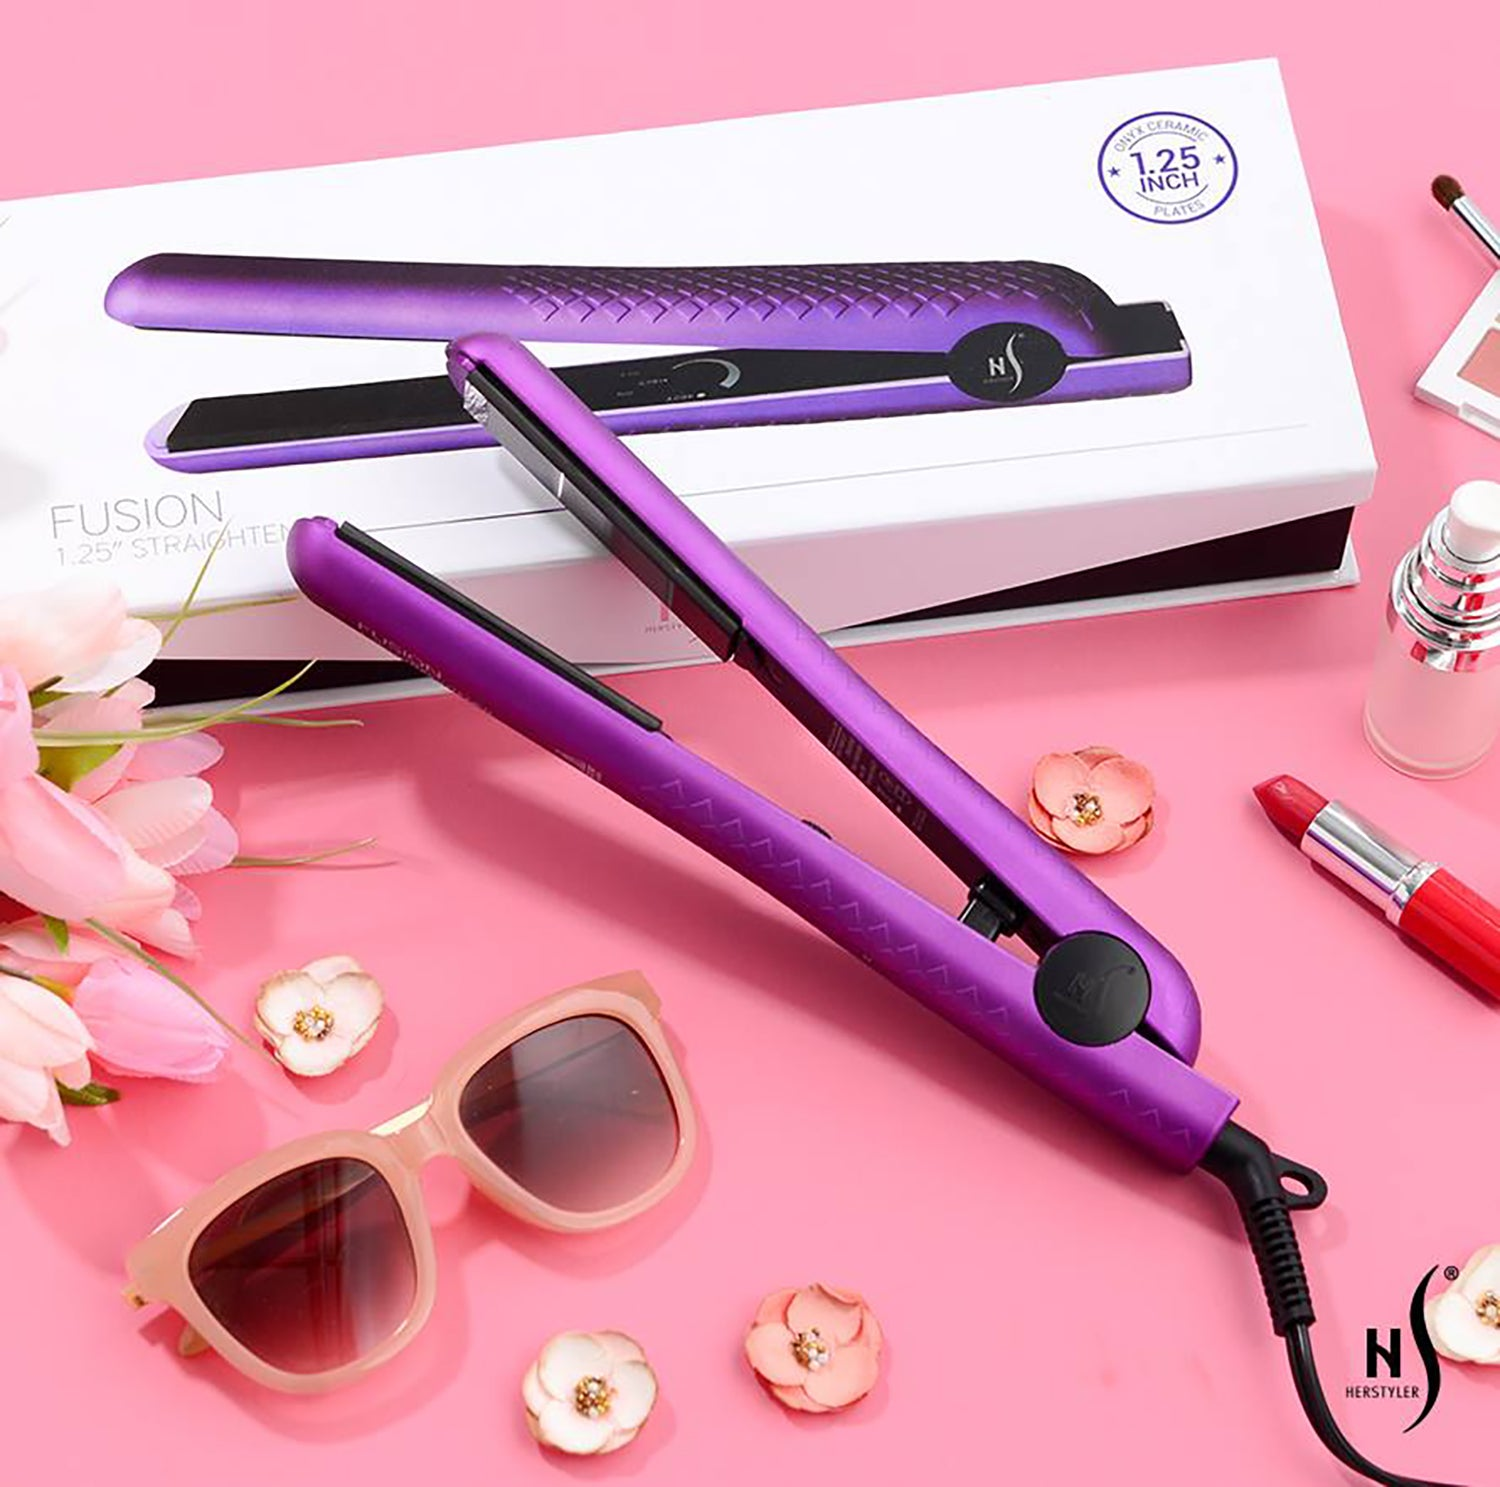 herstyler ceramic flat iron purple